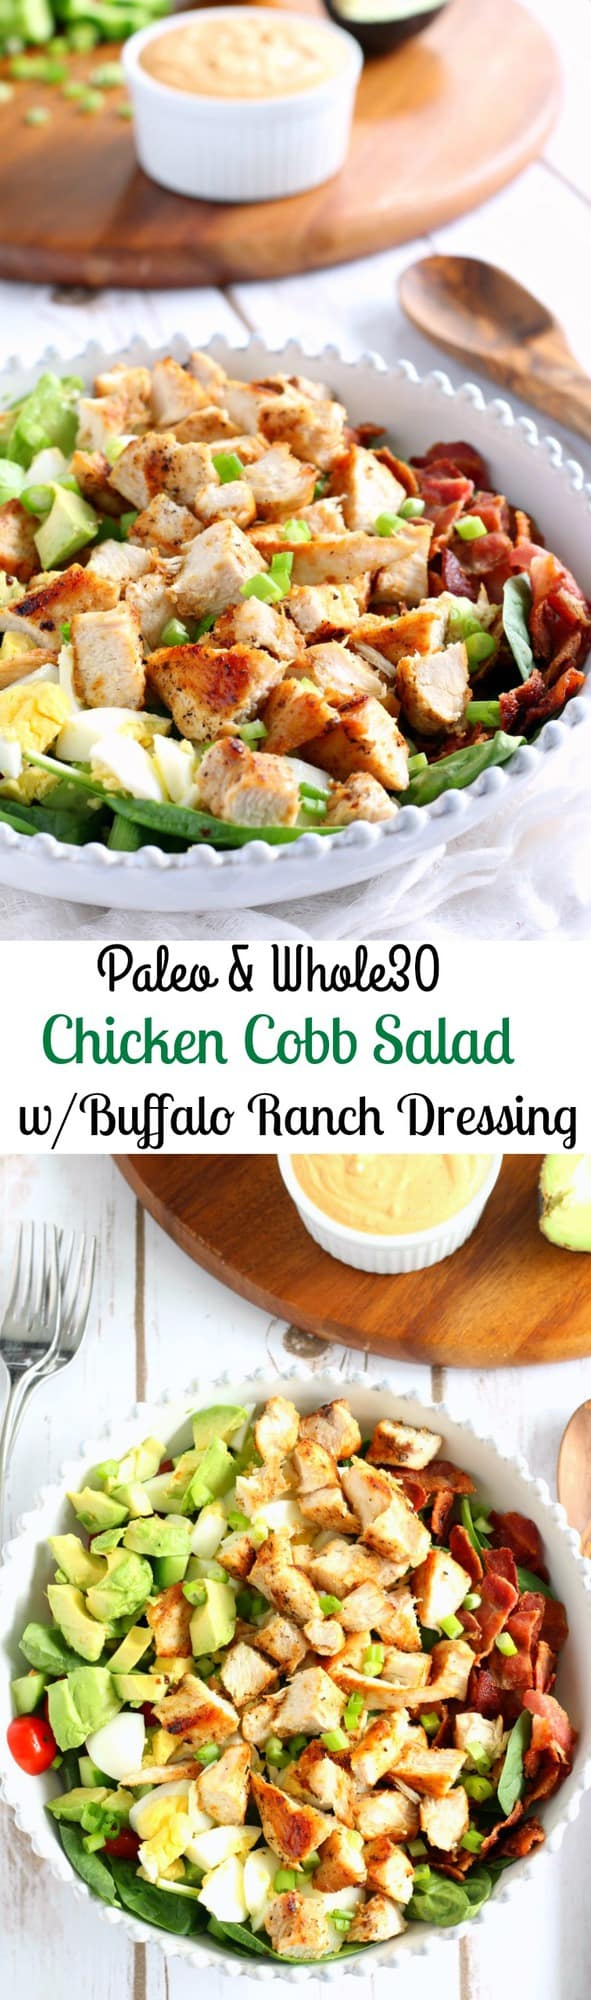 paleo chicken cobb salad with buffalo ranch whole30